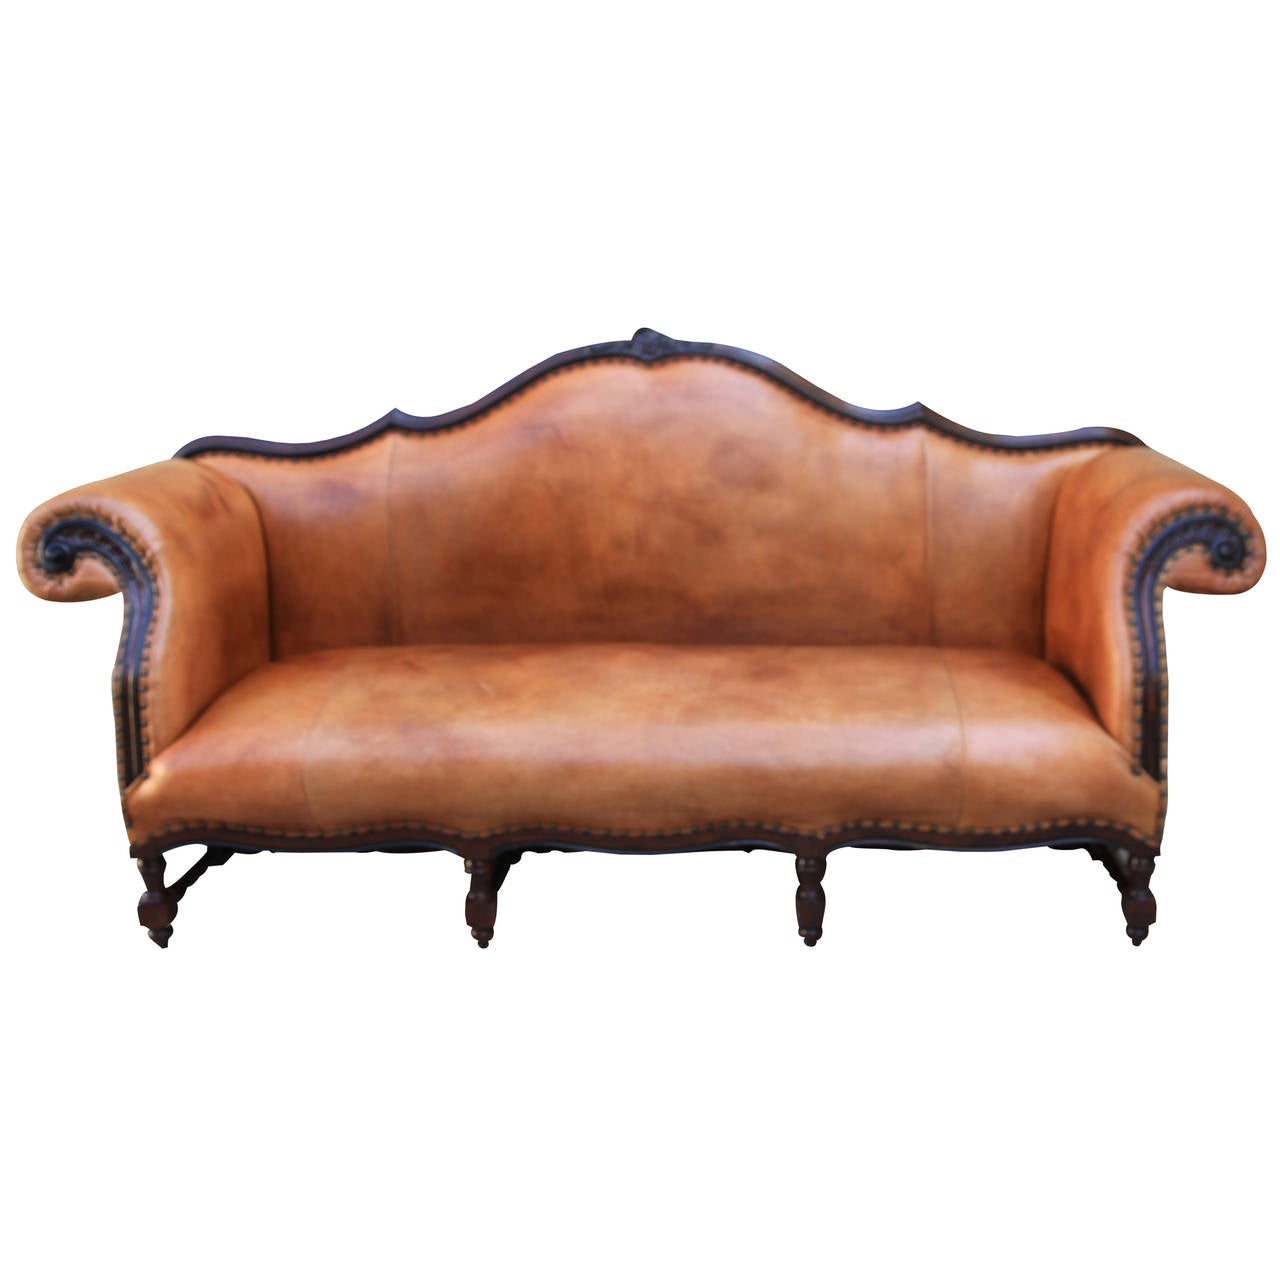 Ralph Lauren Leather Upholstered Sofa At 1stdibs ~ Rolled Arm Leather Sofa